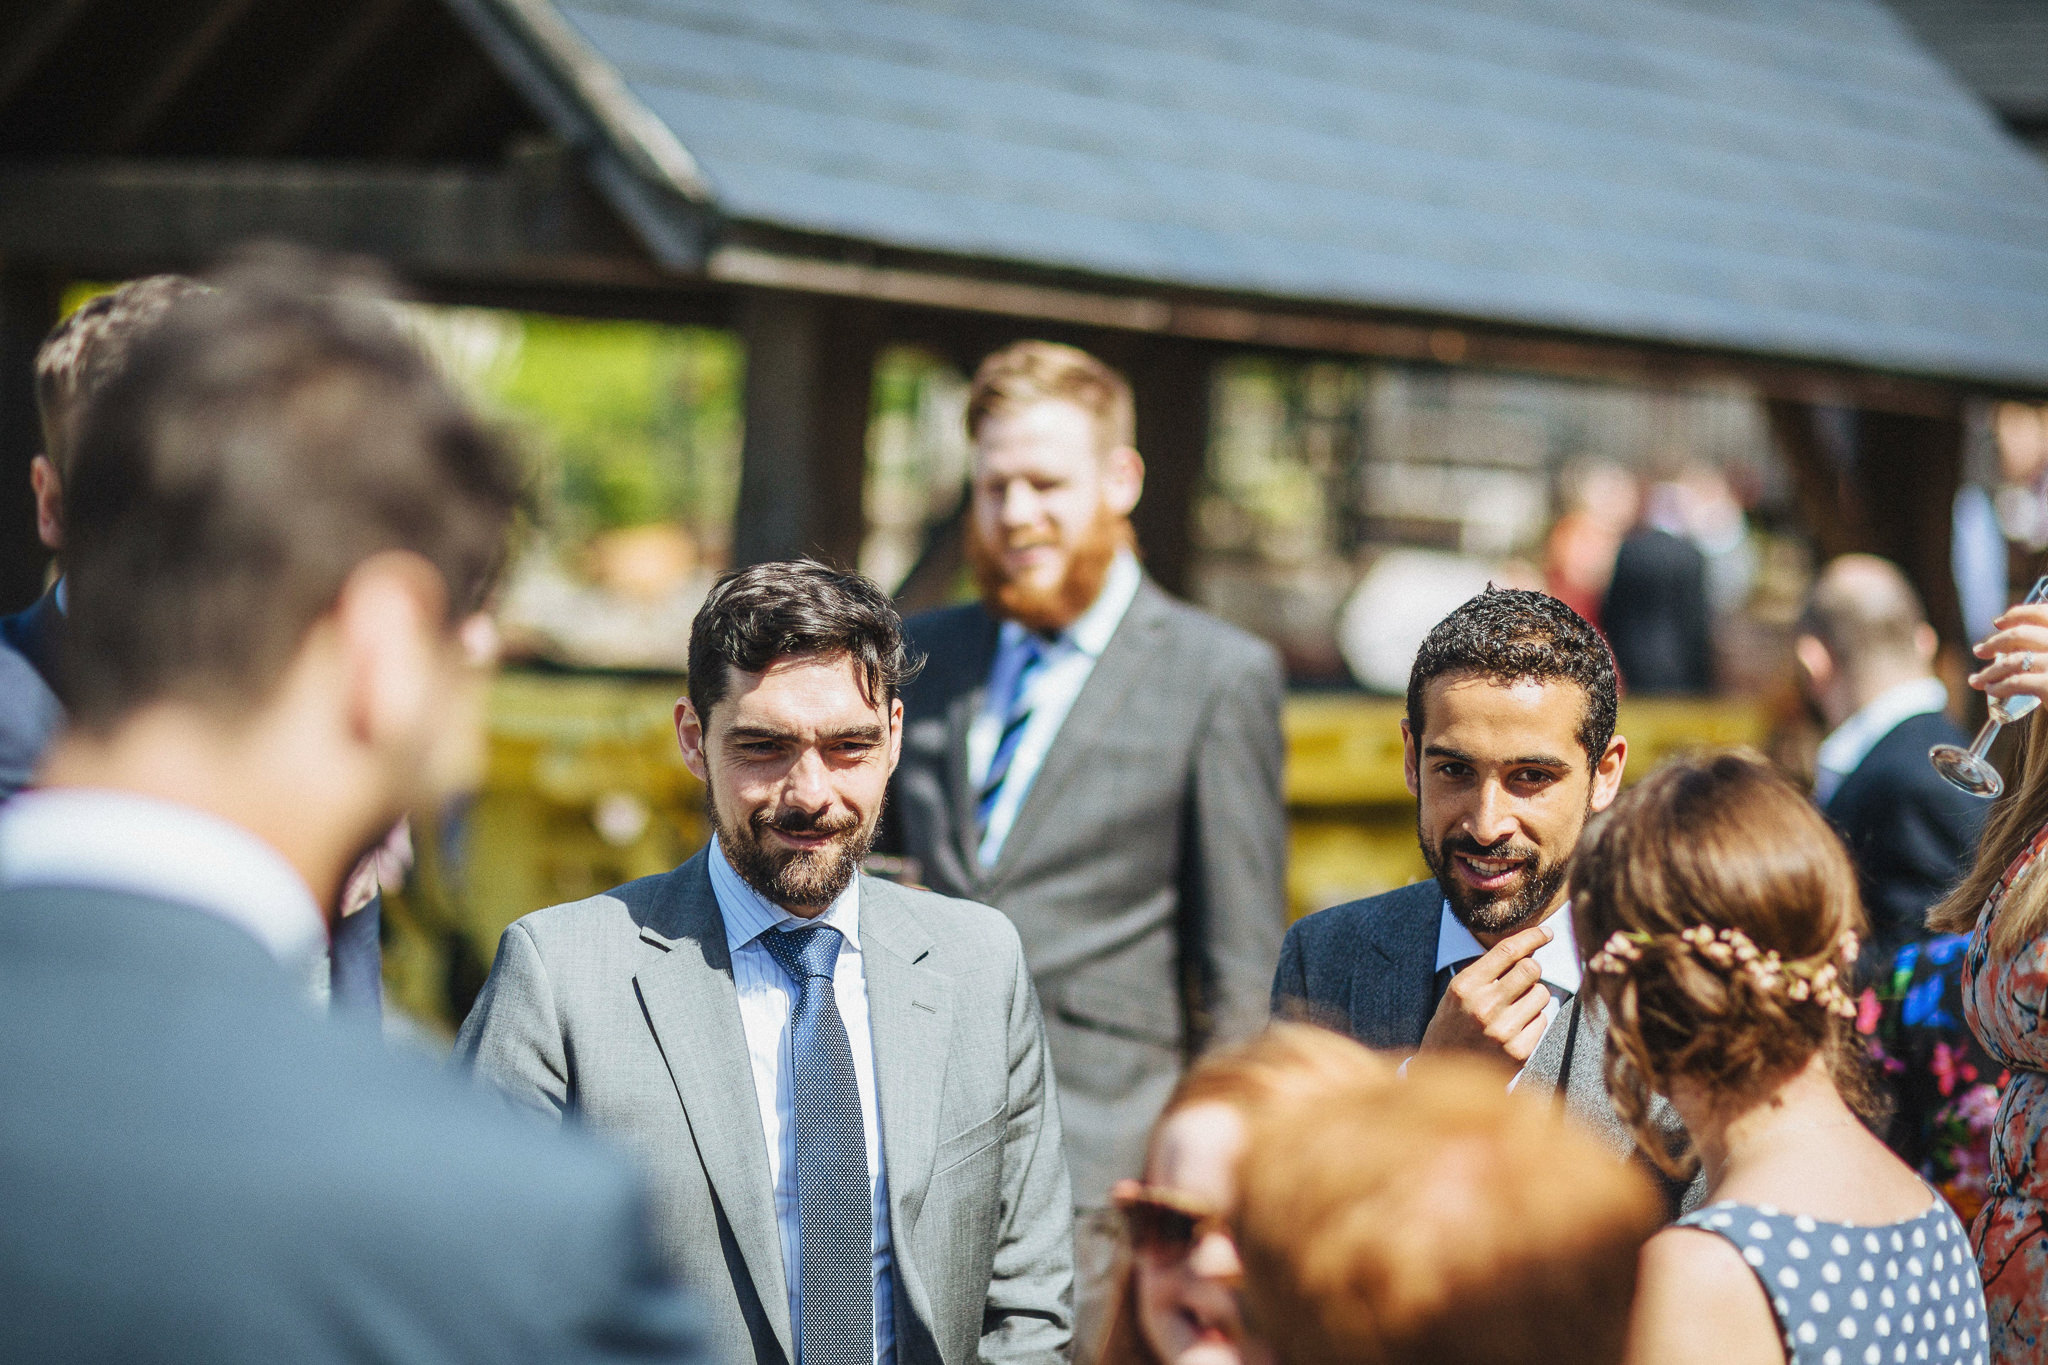 plas-isaf-corwen-north-wales-farm-wedding-photography-photographer-90055